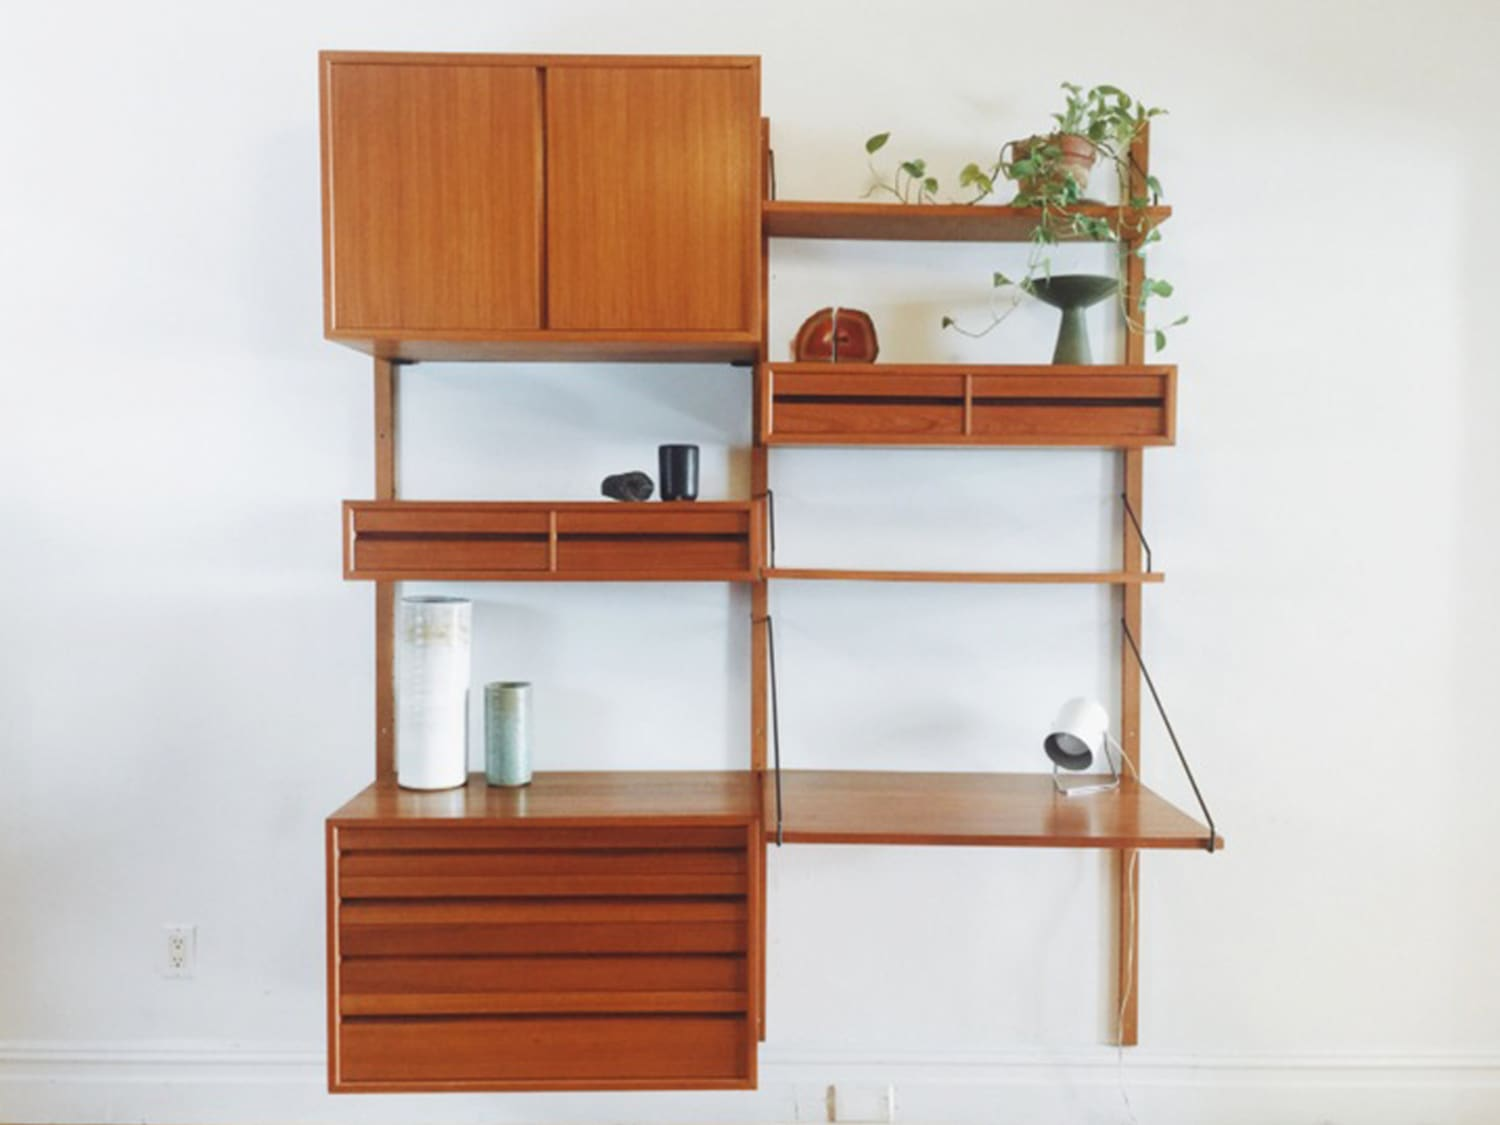 Vintage Mid-Century Wall Units for Every Budget